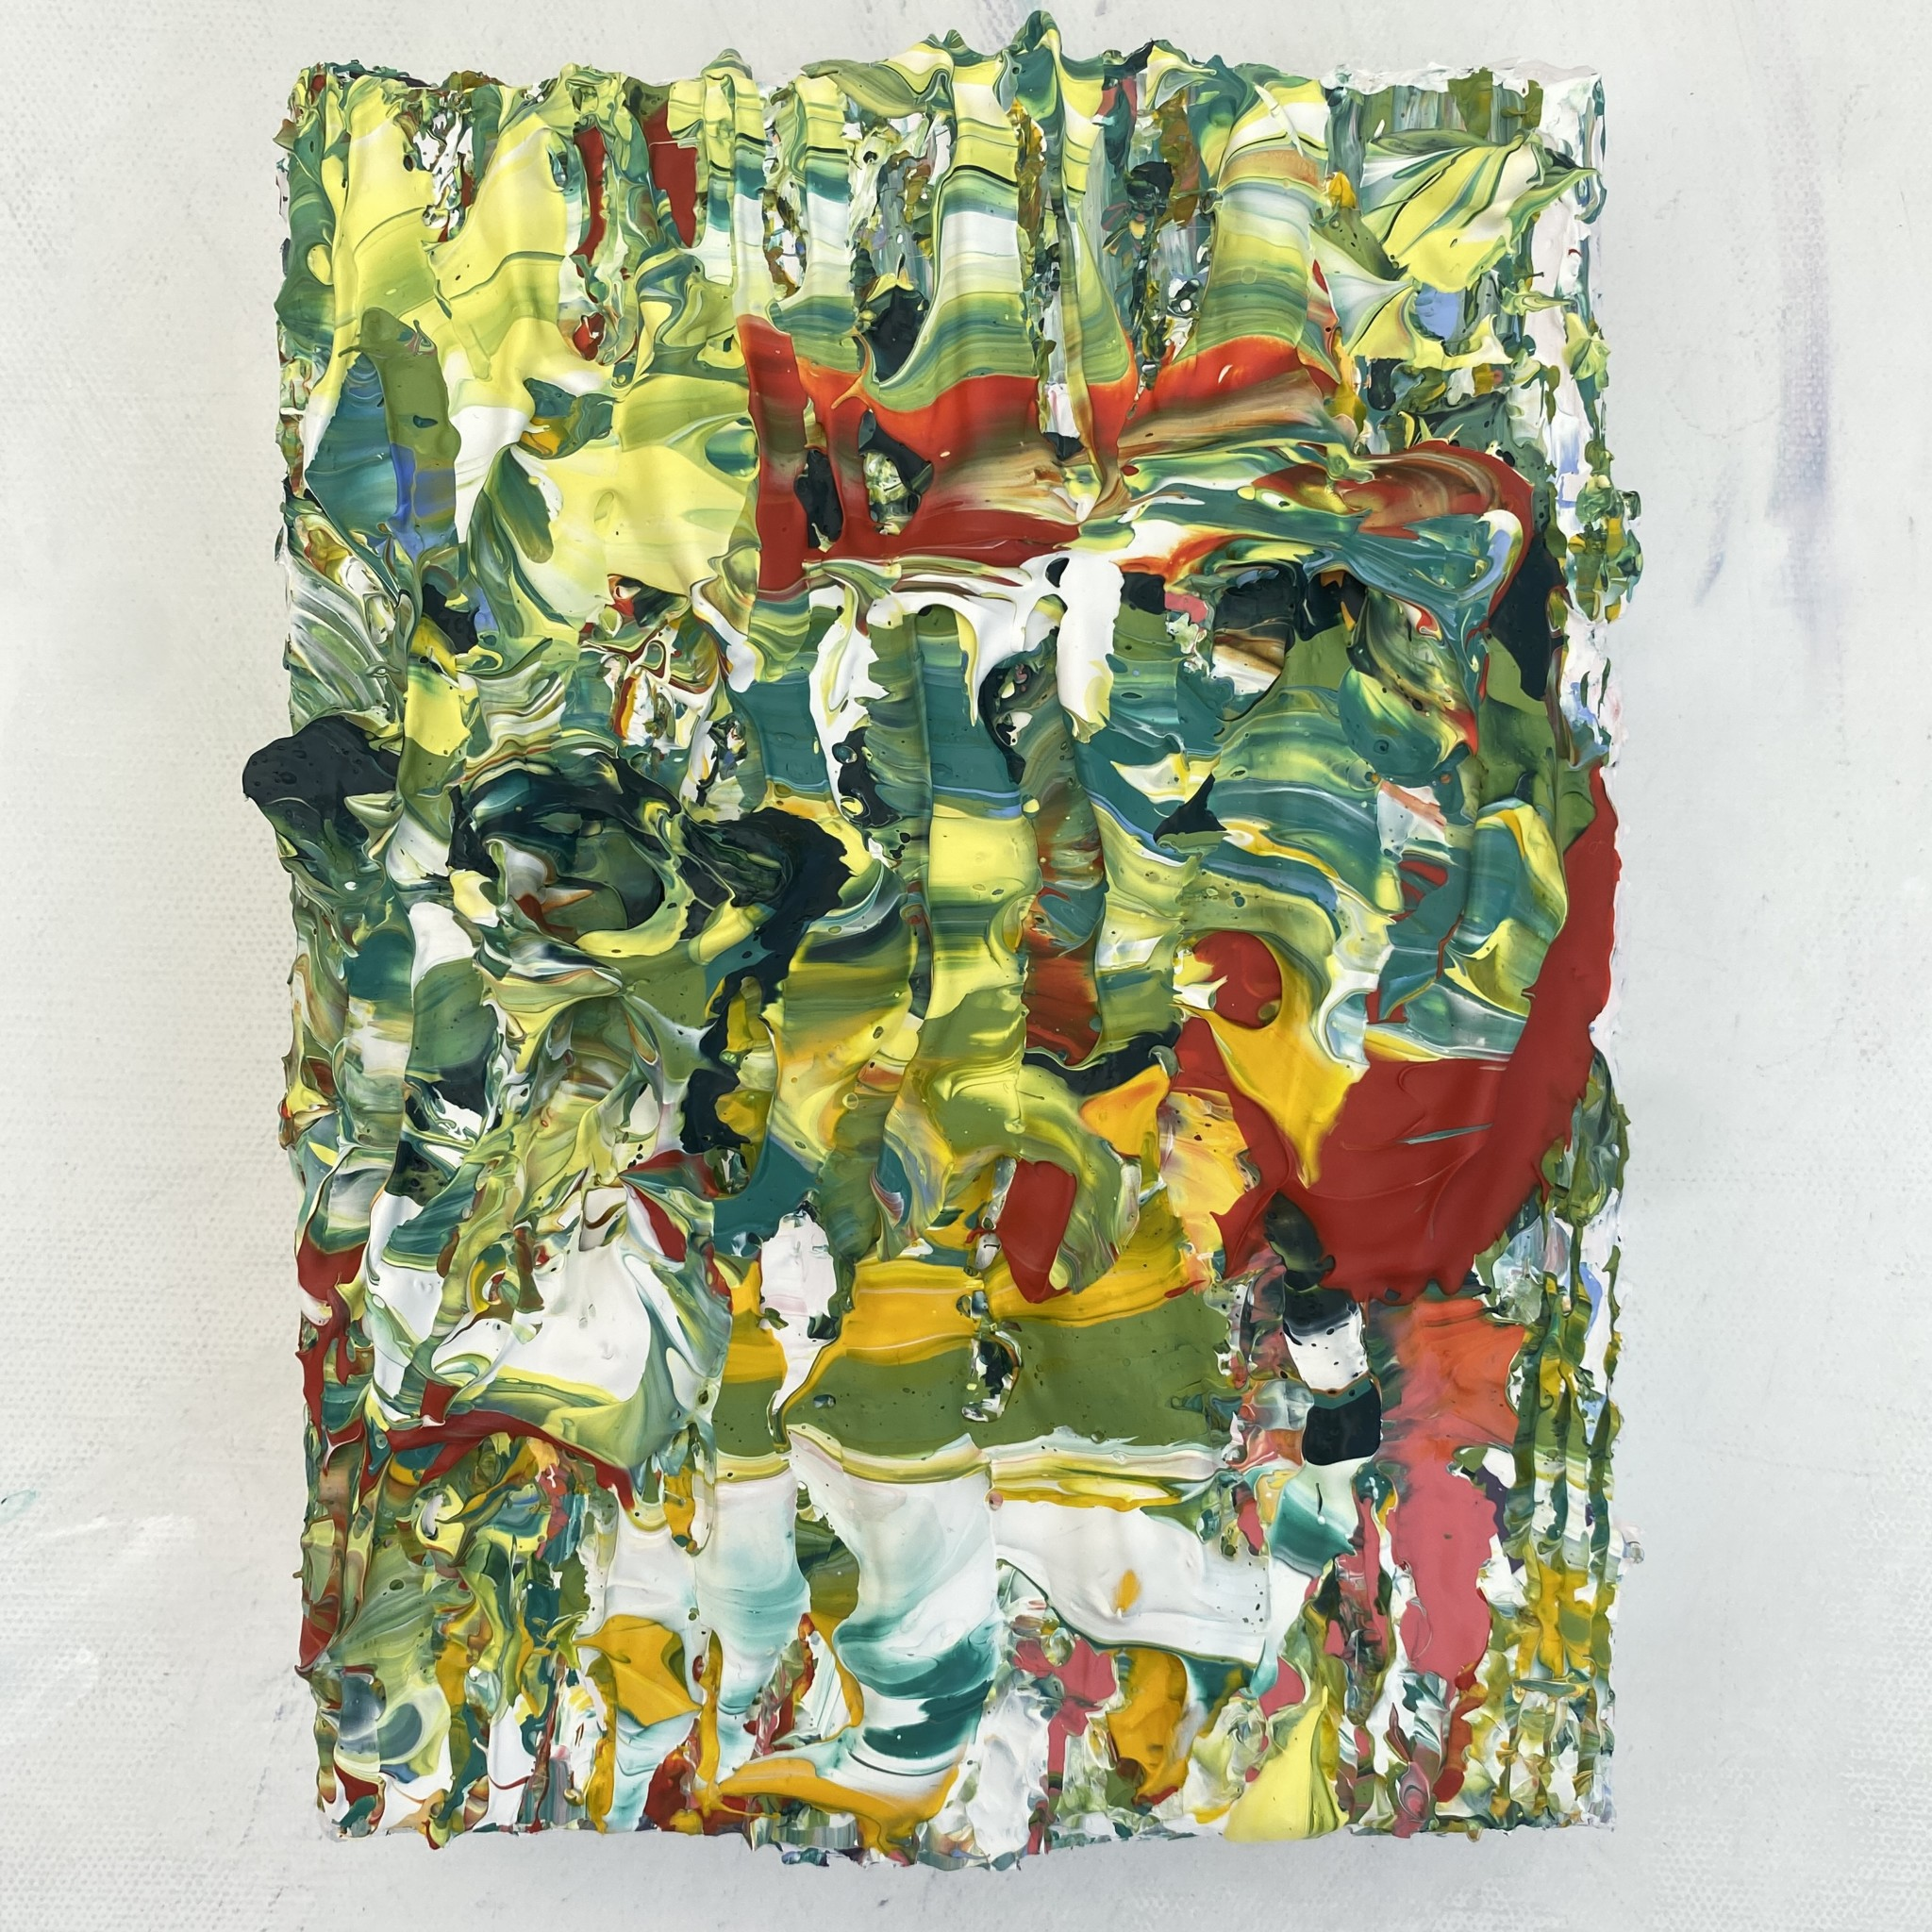 Detailed Gallery View of Rainforest mini original abstract textured painting by Emily Duchscherer Kirk.